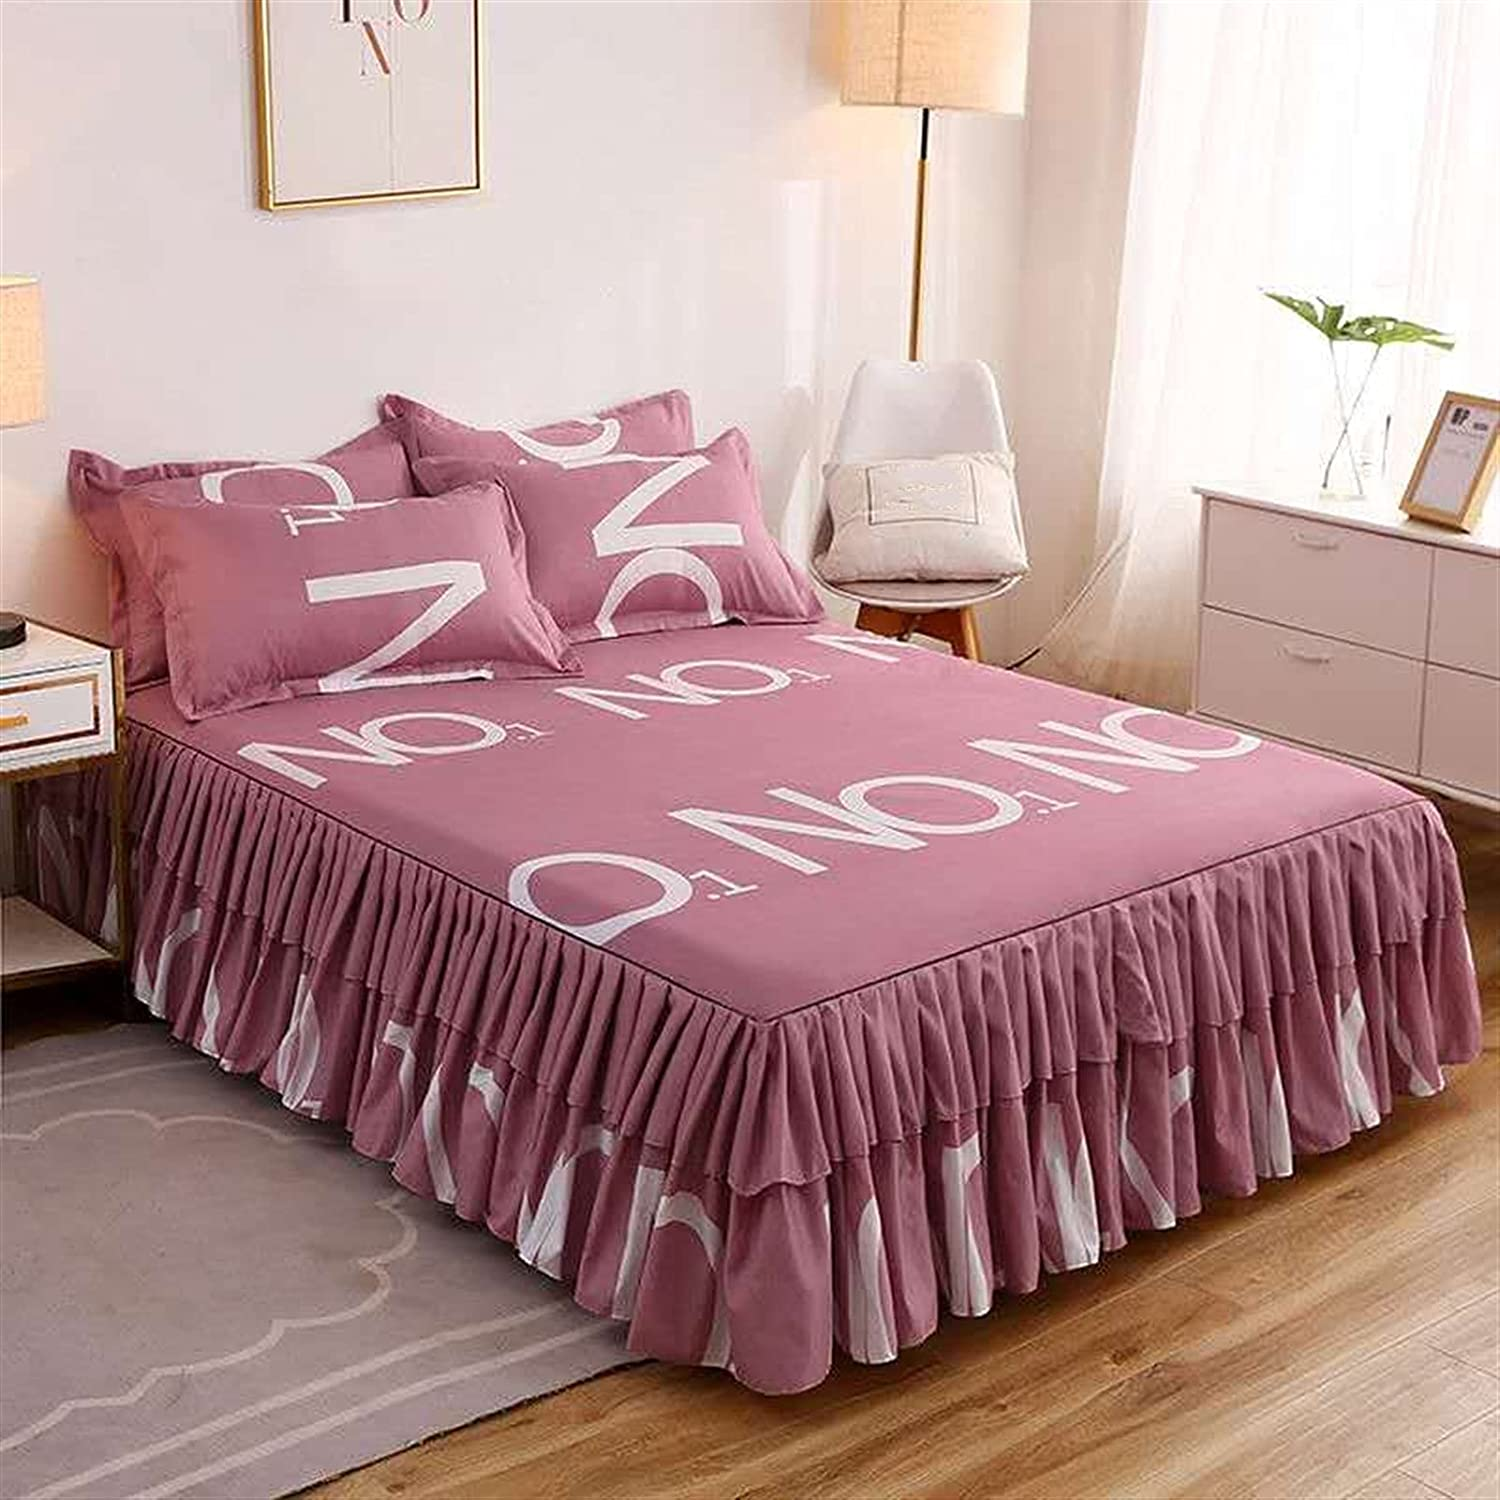 Bed 5 popular Sheet+ Max 77% OFF 2pcs Pillow Covers Skirt Shee Bedspread Thickened